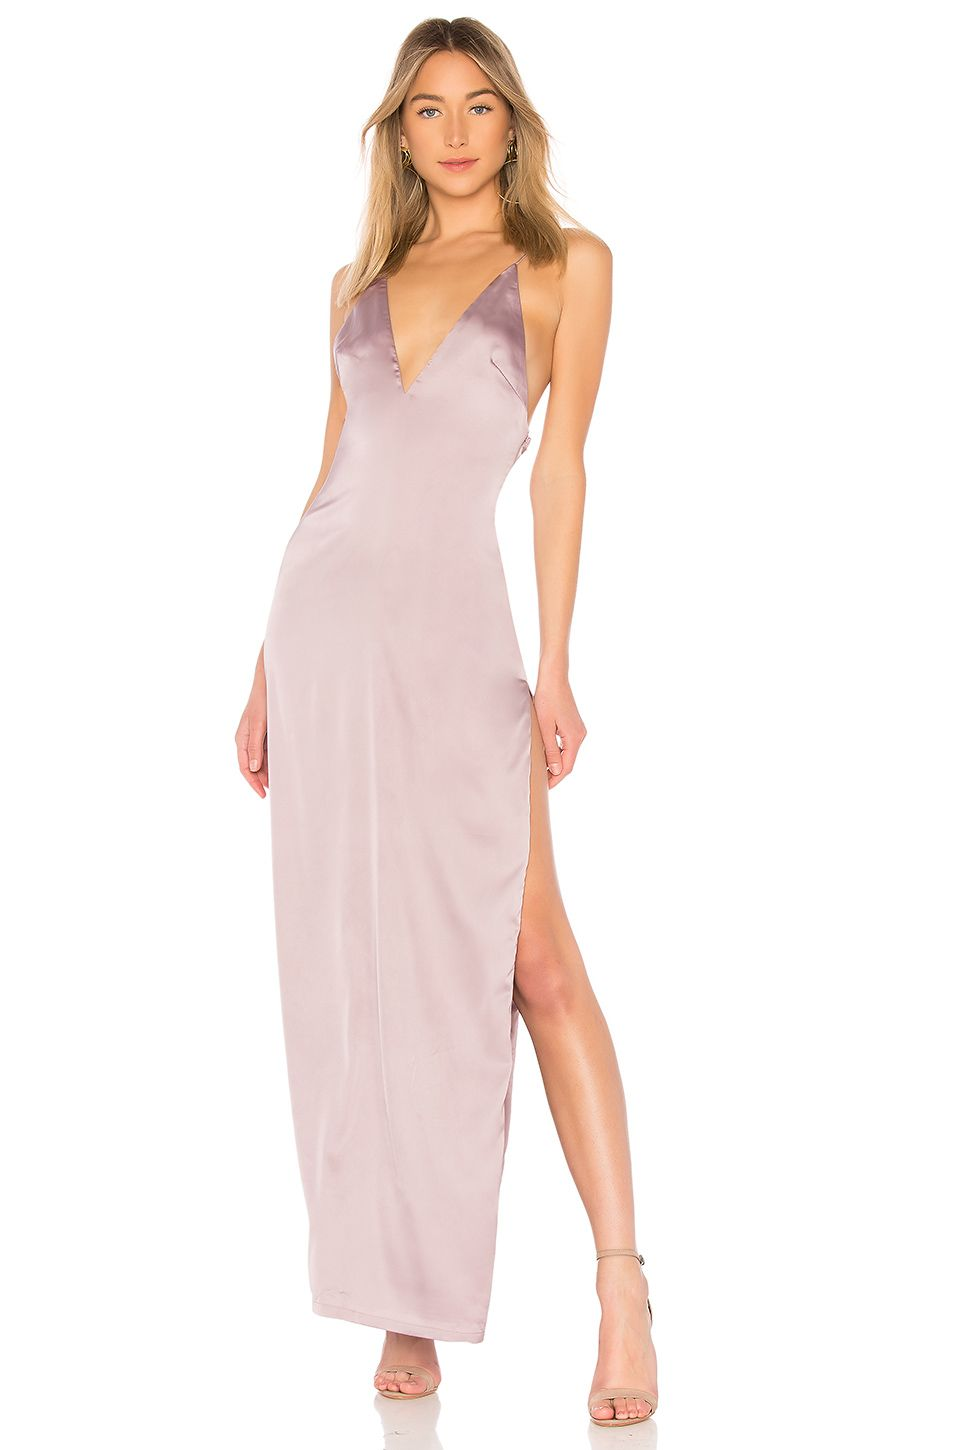 7e3f27c3522c This maxi slip-style dress is both classic and flirty with its plunging  neckline